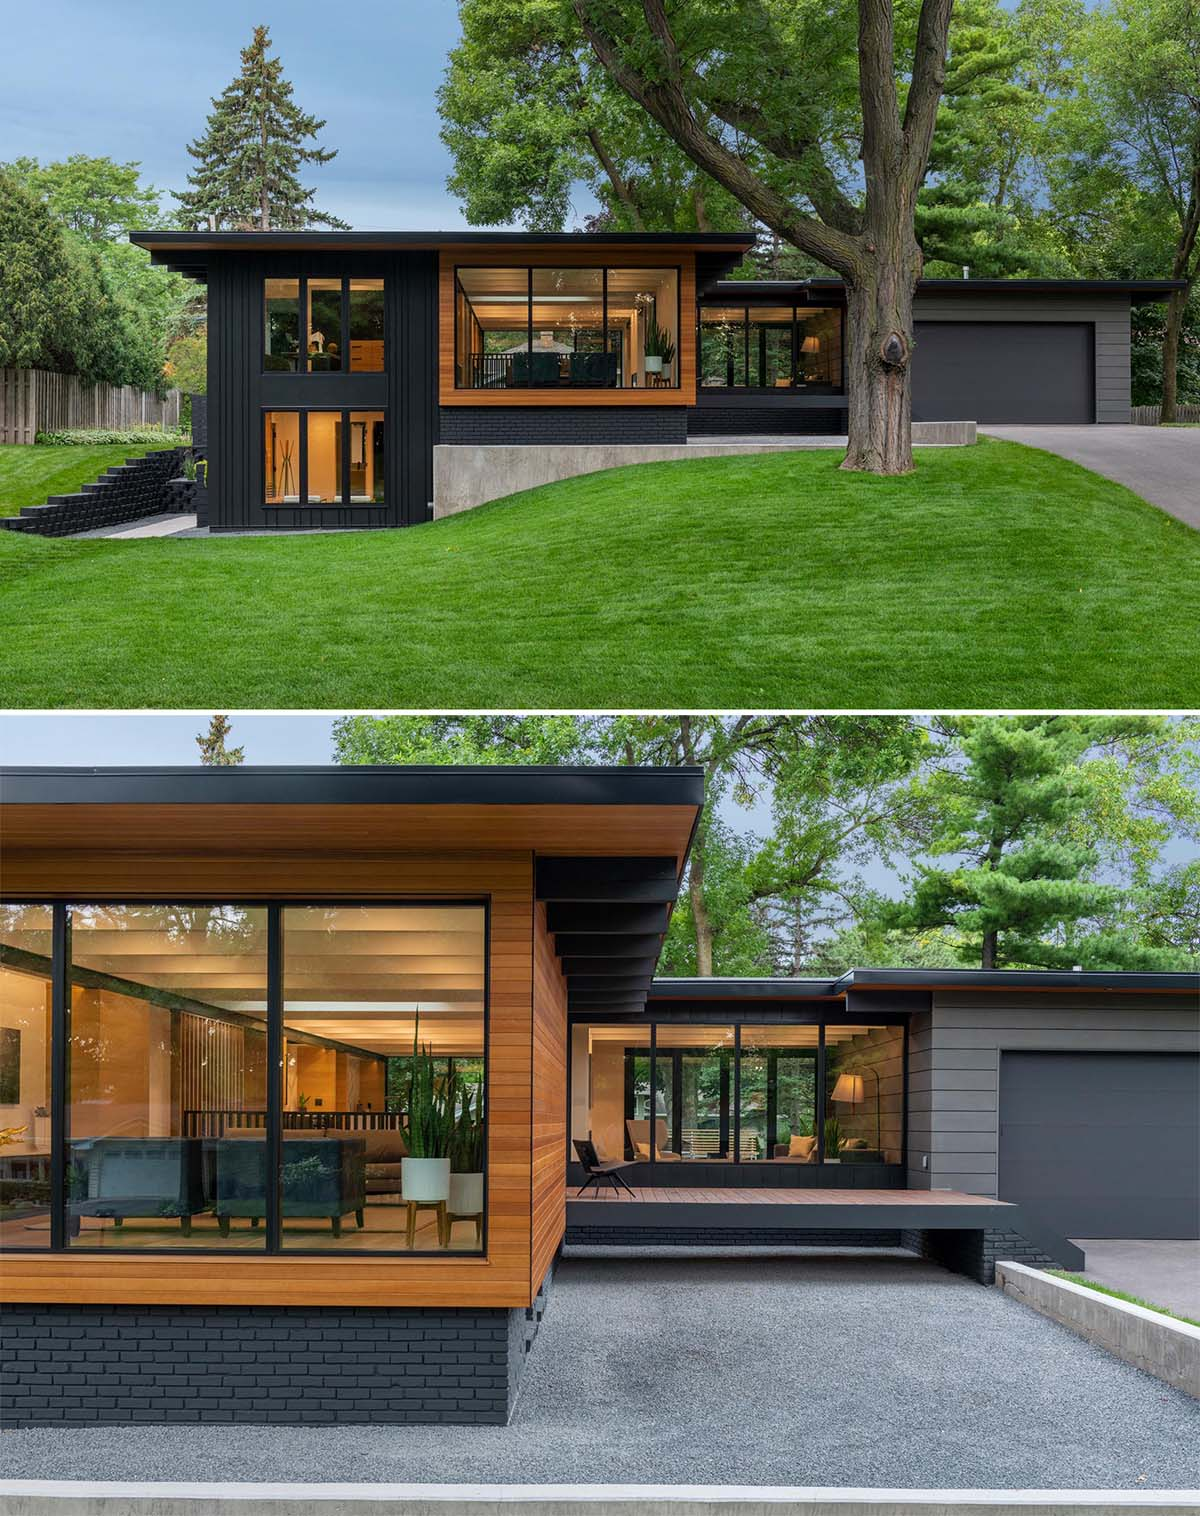 A remodeled mid century modern house with a black and wood exterior.